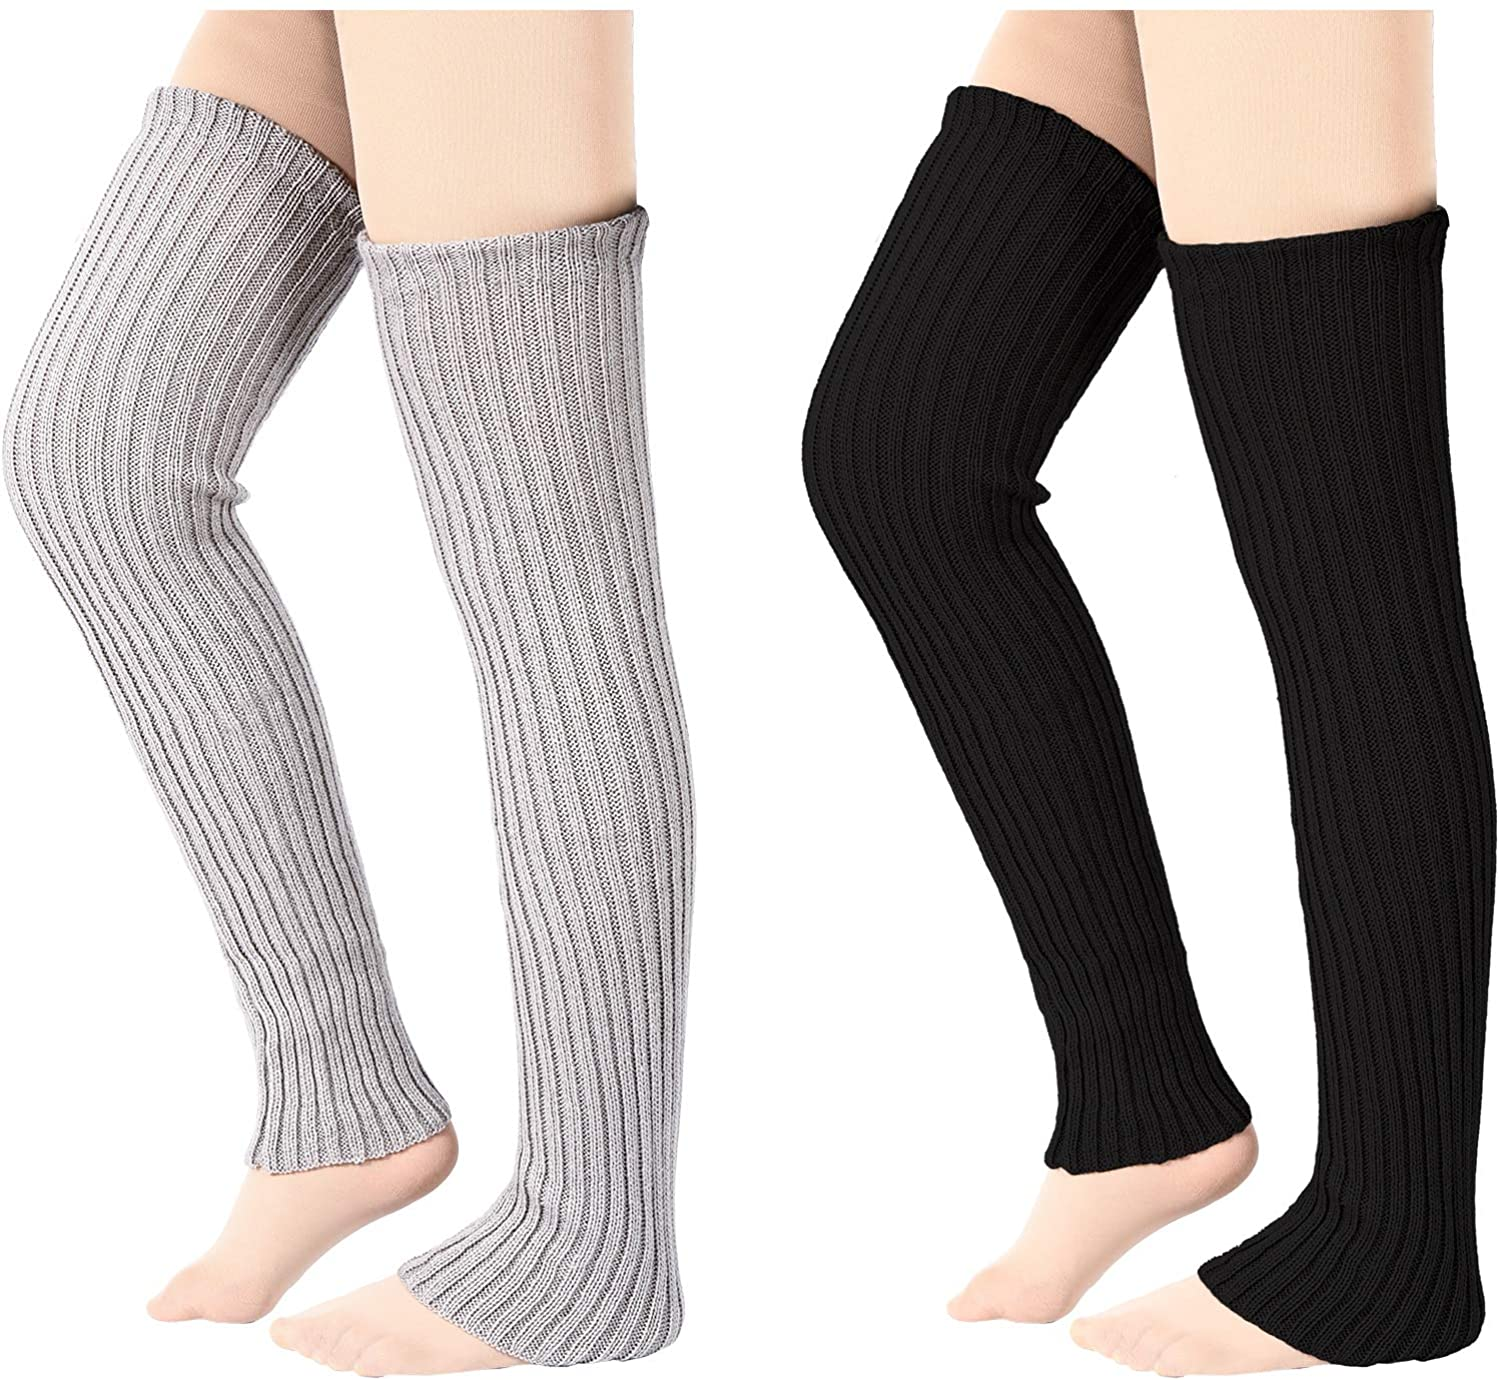 2 Pairs Winter Knit Leg Warmers Thigh High Footless Leg Warmers for Women